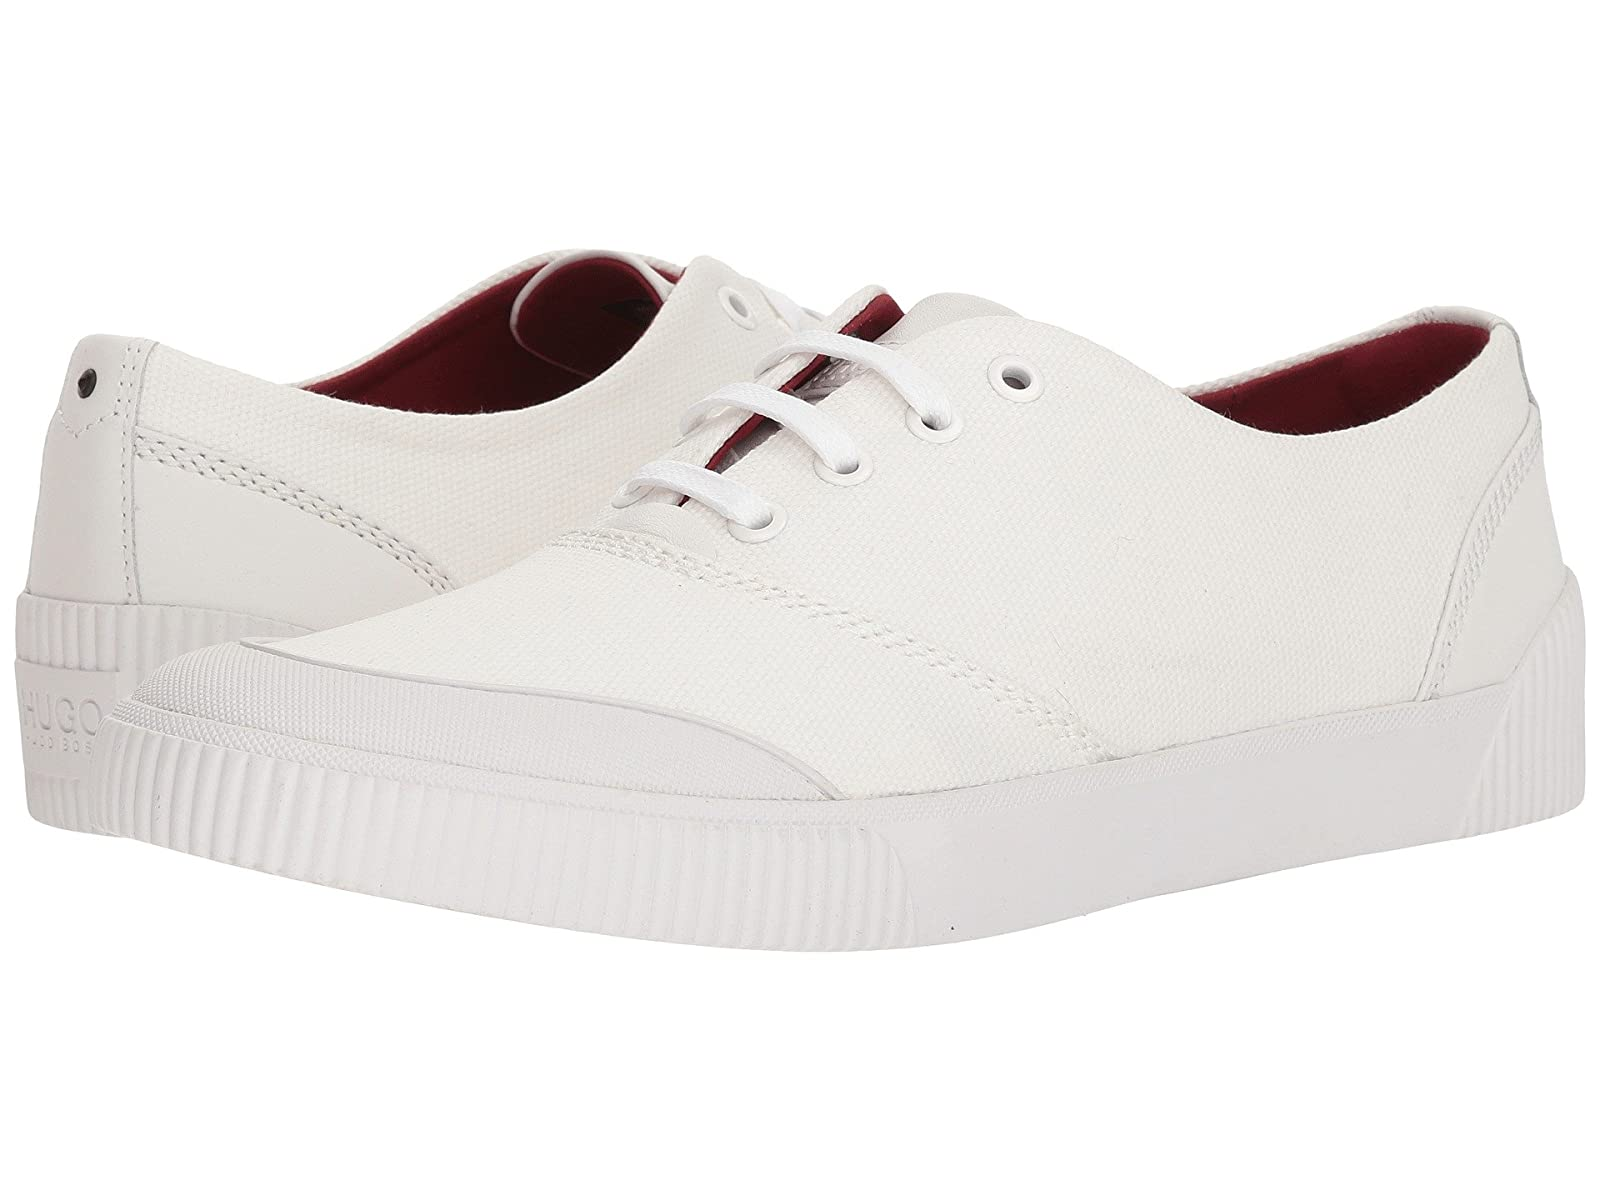 BOSS Hugo Boss Zero Tennis Sneaker By HugoAtmospheric grades have affordable shoes